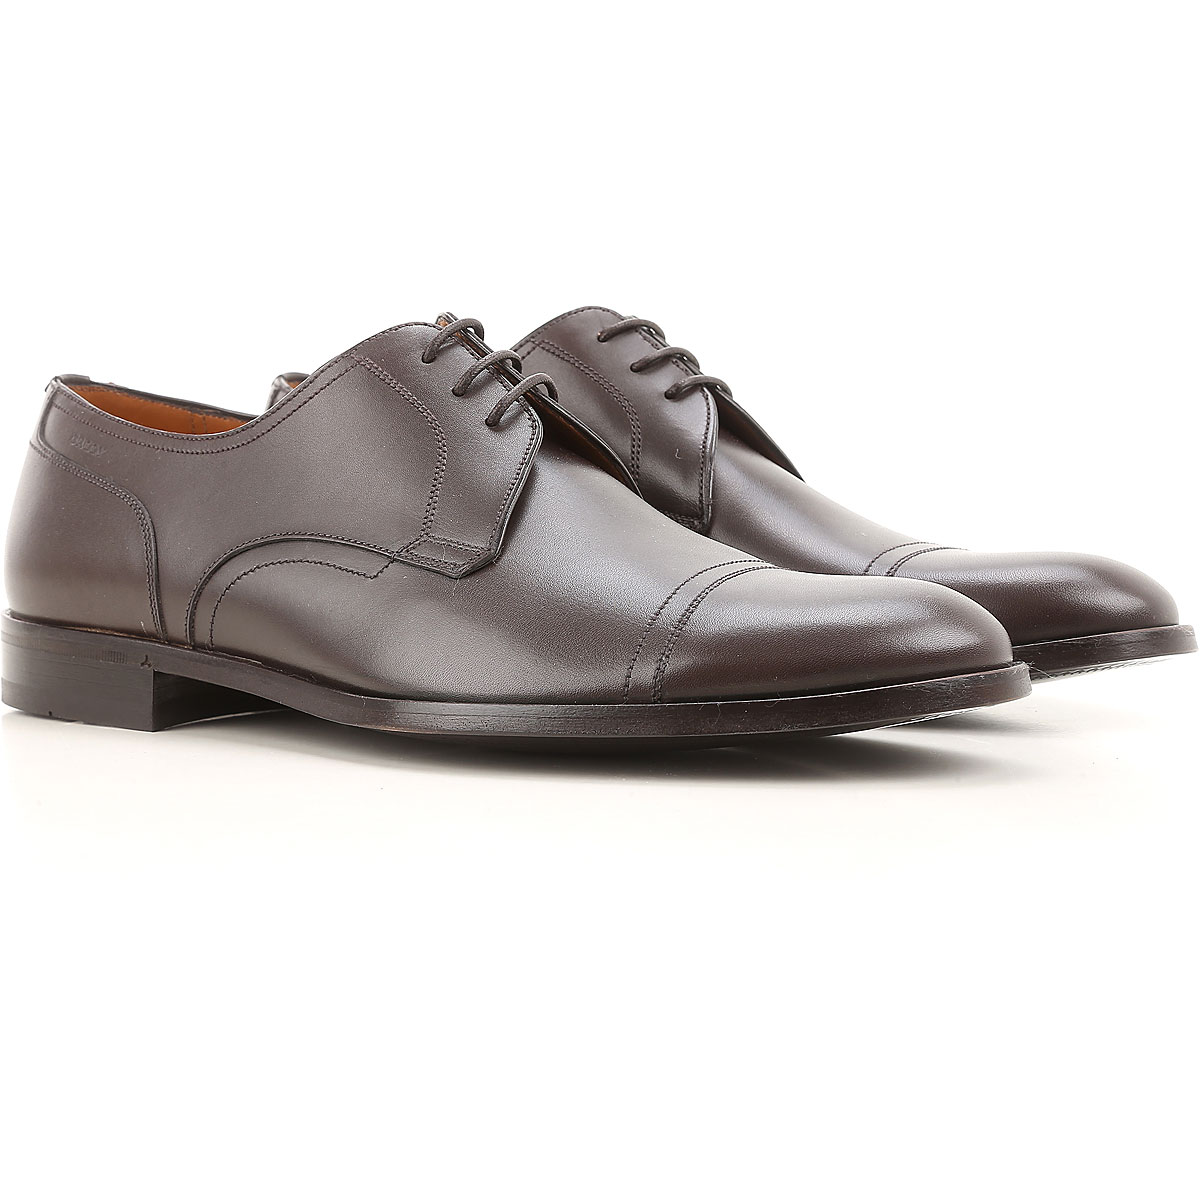 Image of Bally Brogue Shoes On Sale in Outlet, Coffee, Leather, 2017, 9